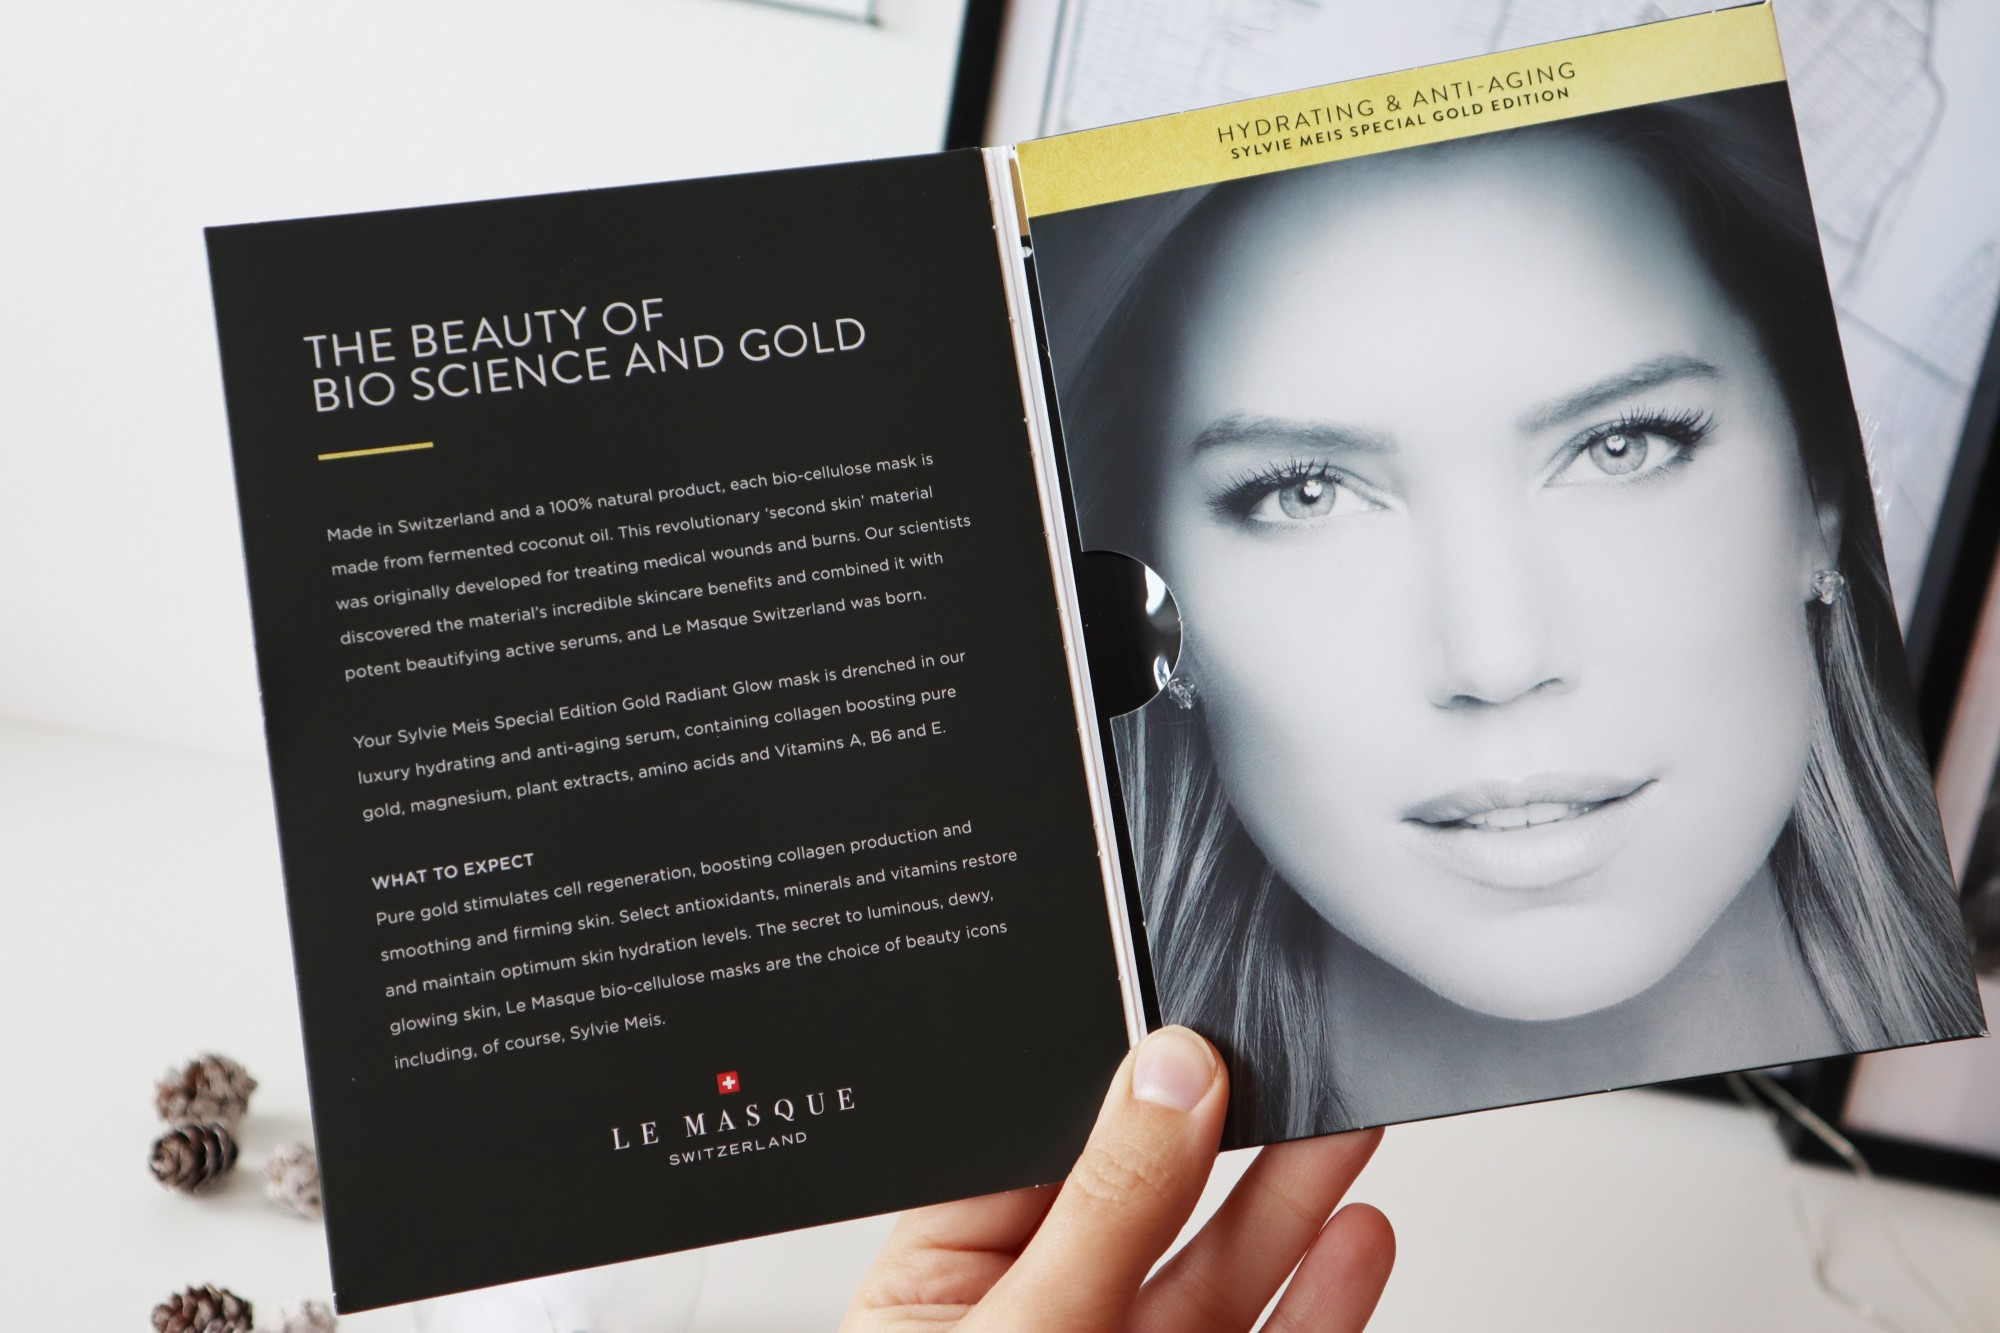 Le Masque Sylvie's Gold Radiant Glow Face Mask